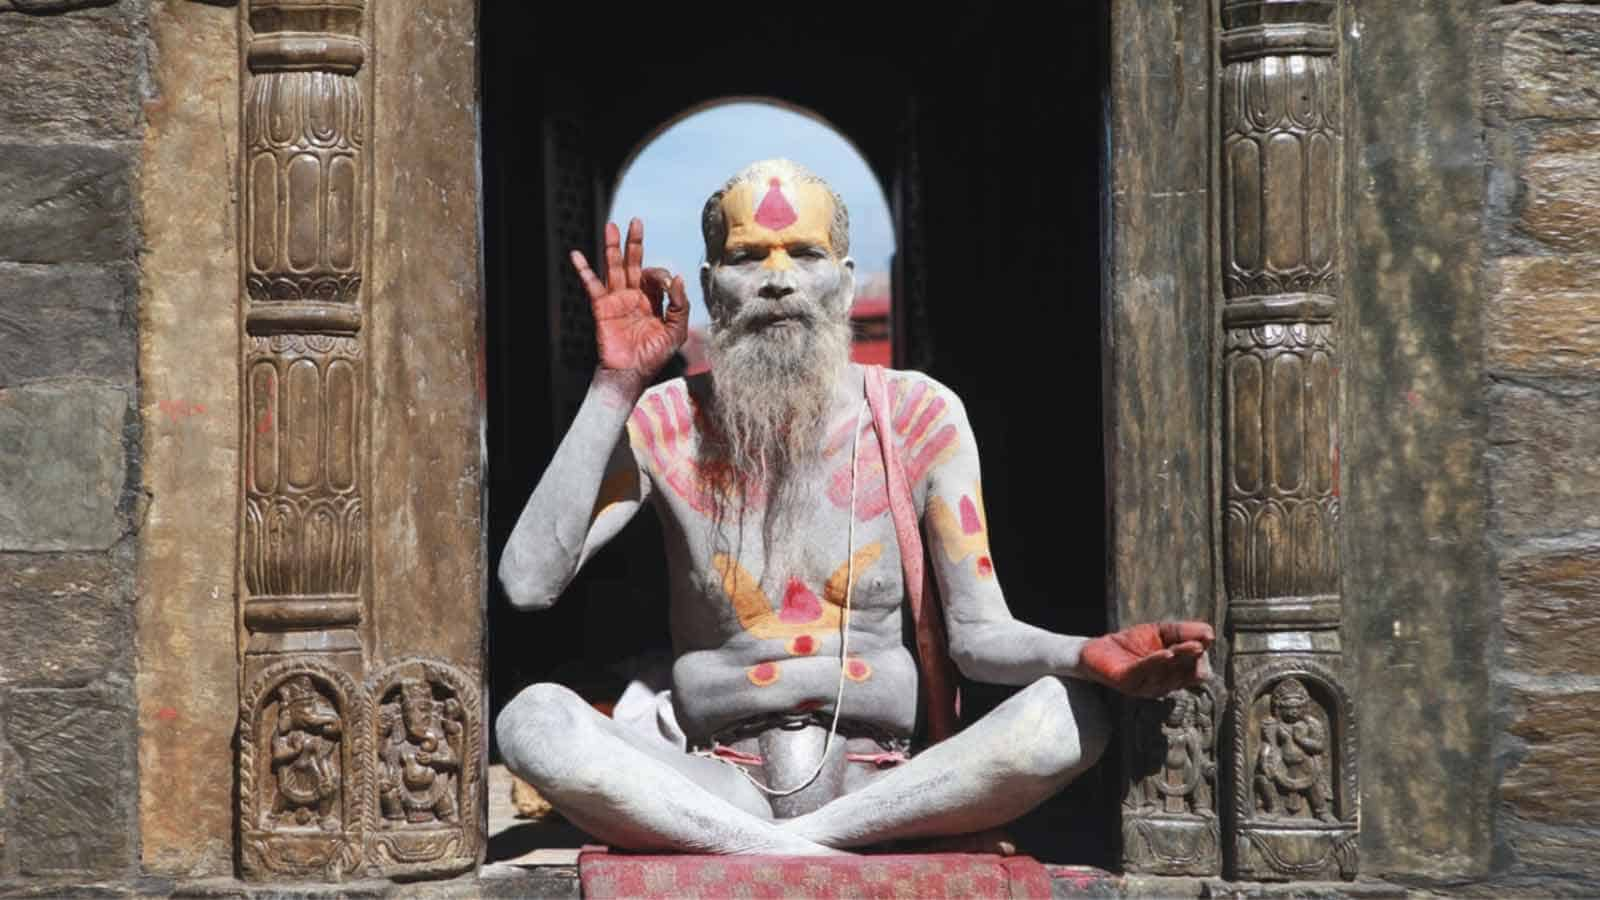 Yoga origins and history of yoga explained by ancient yogis